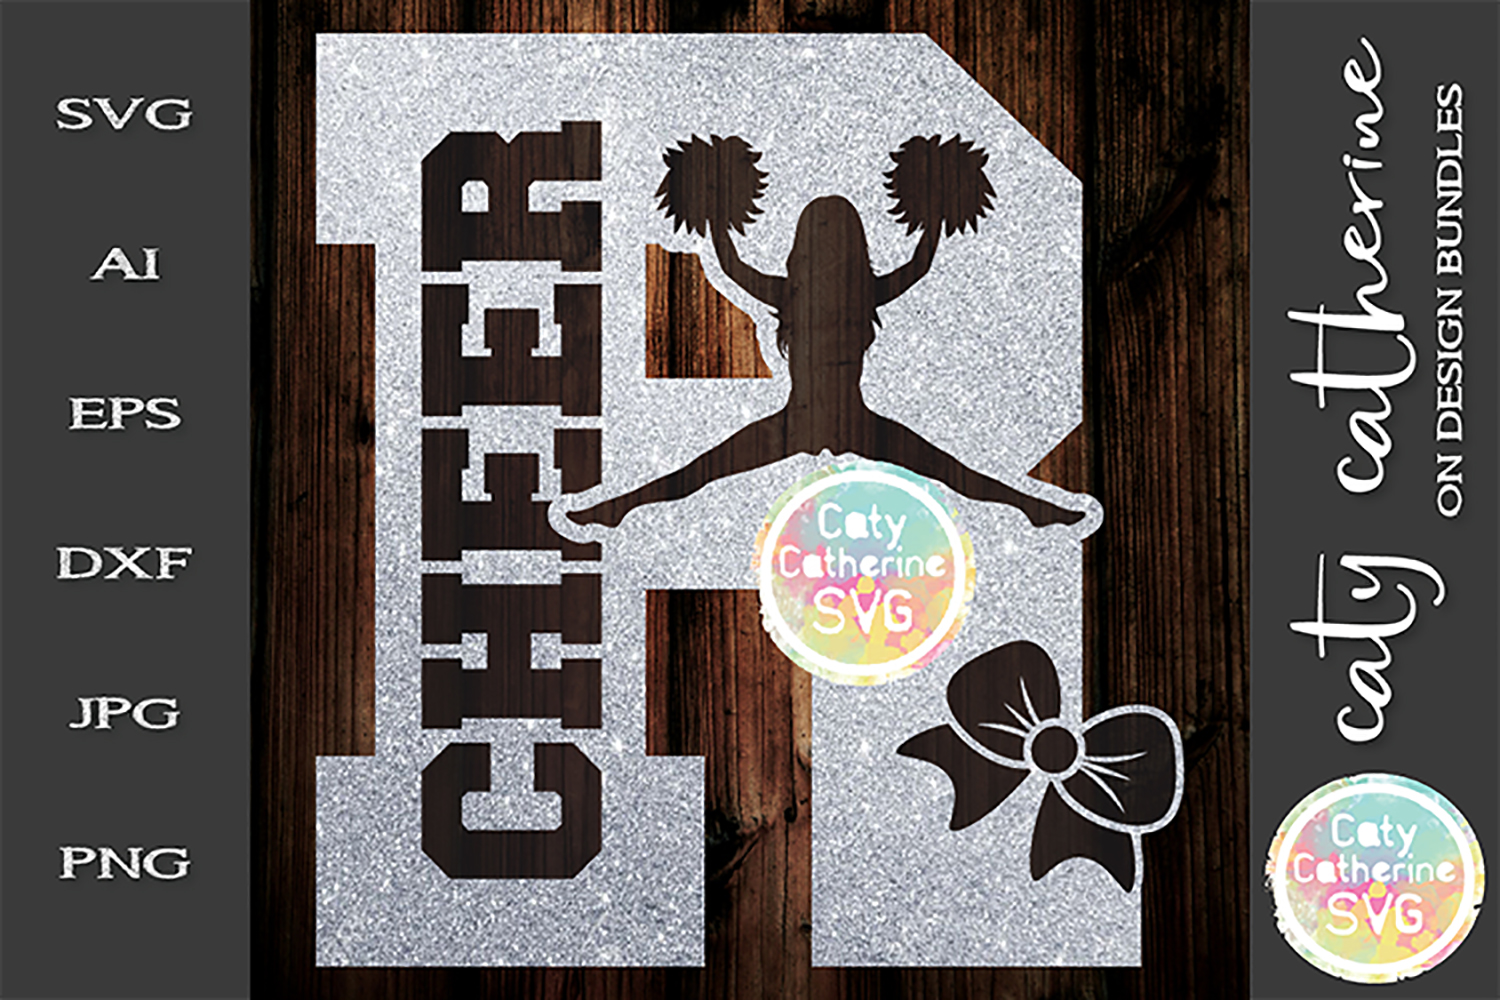 Letter R Cheerleading Monogram Letters SVG Cut File example image 1